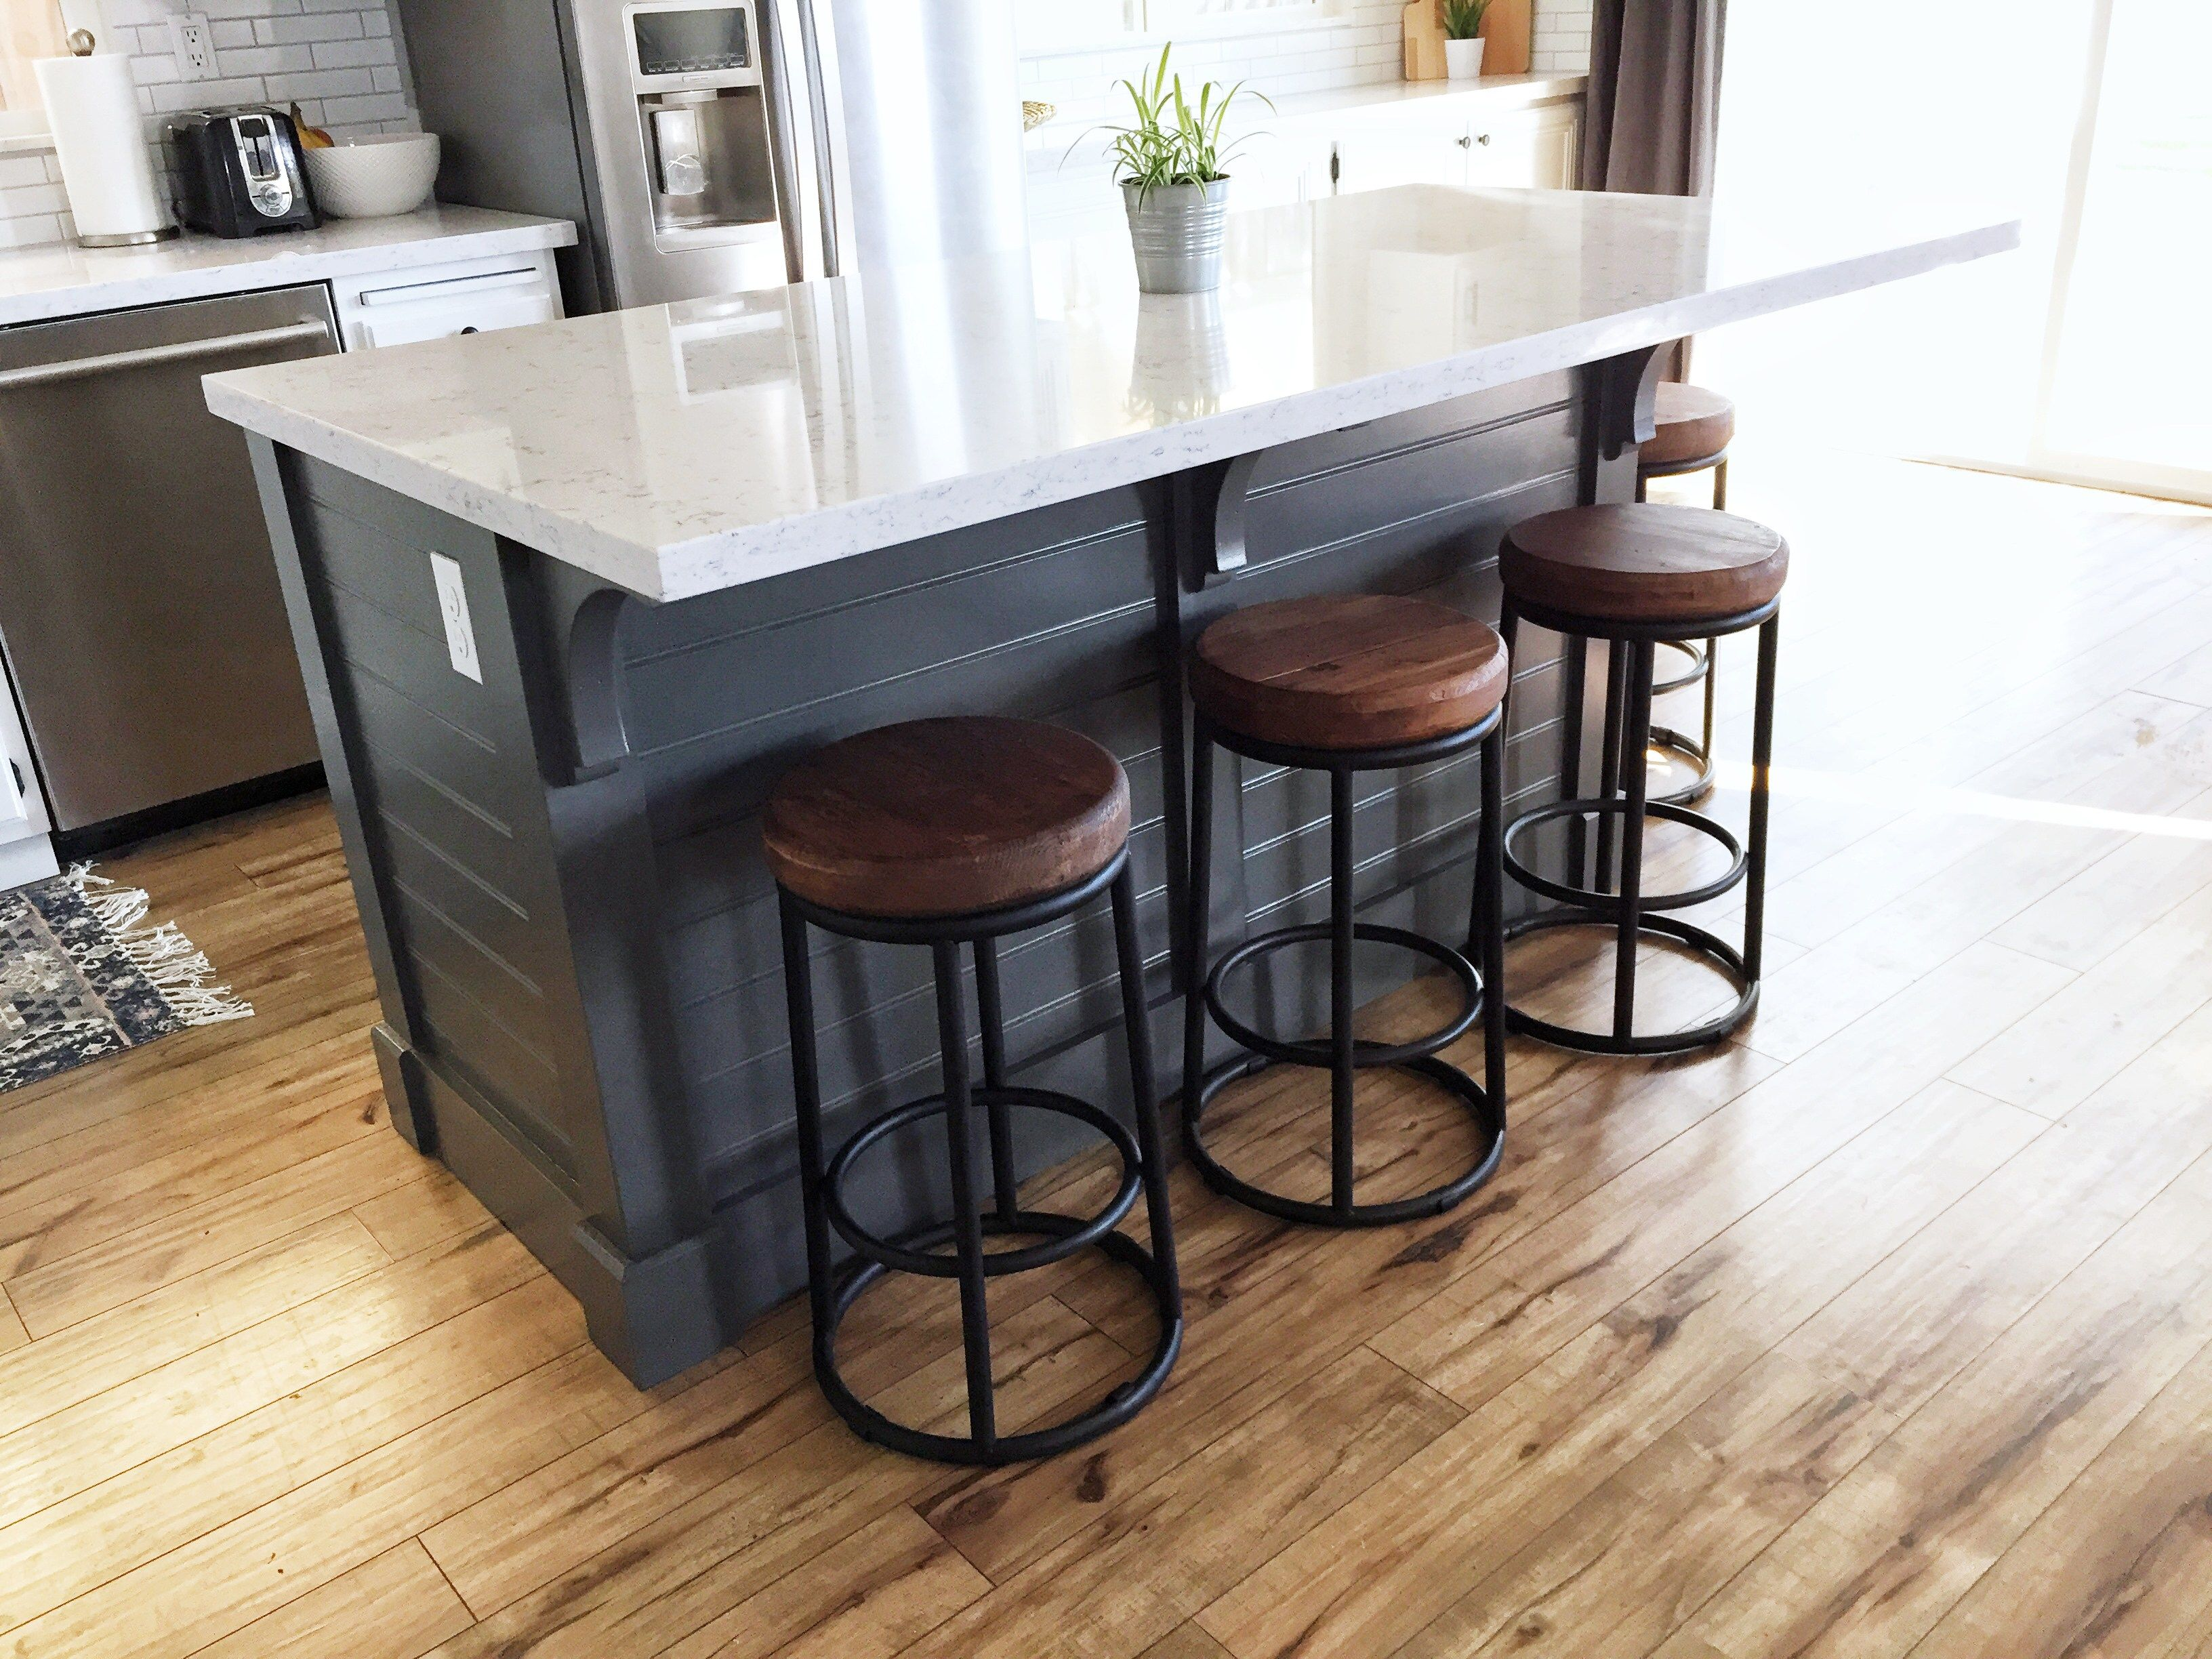 Merveilleux Diy Kitchen Island